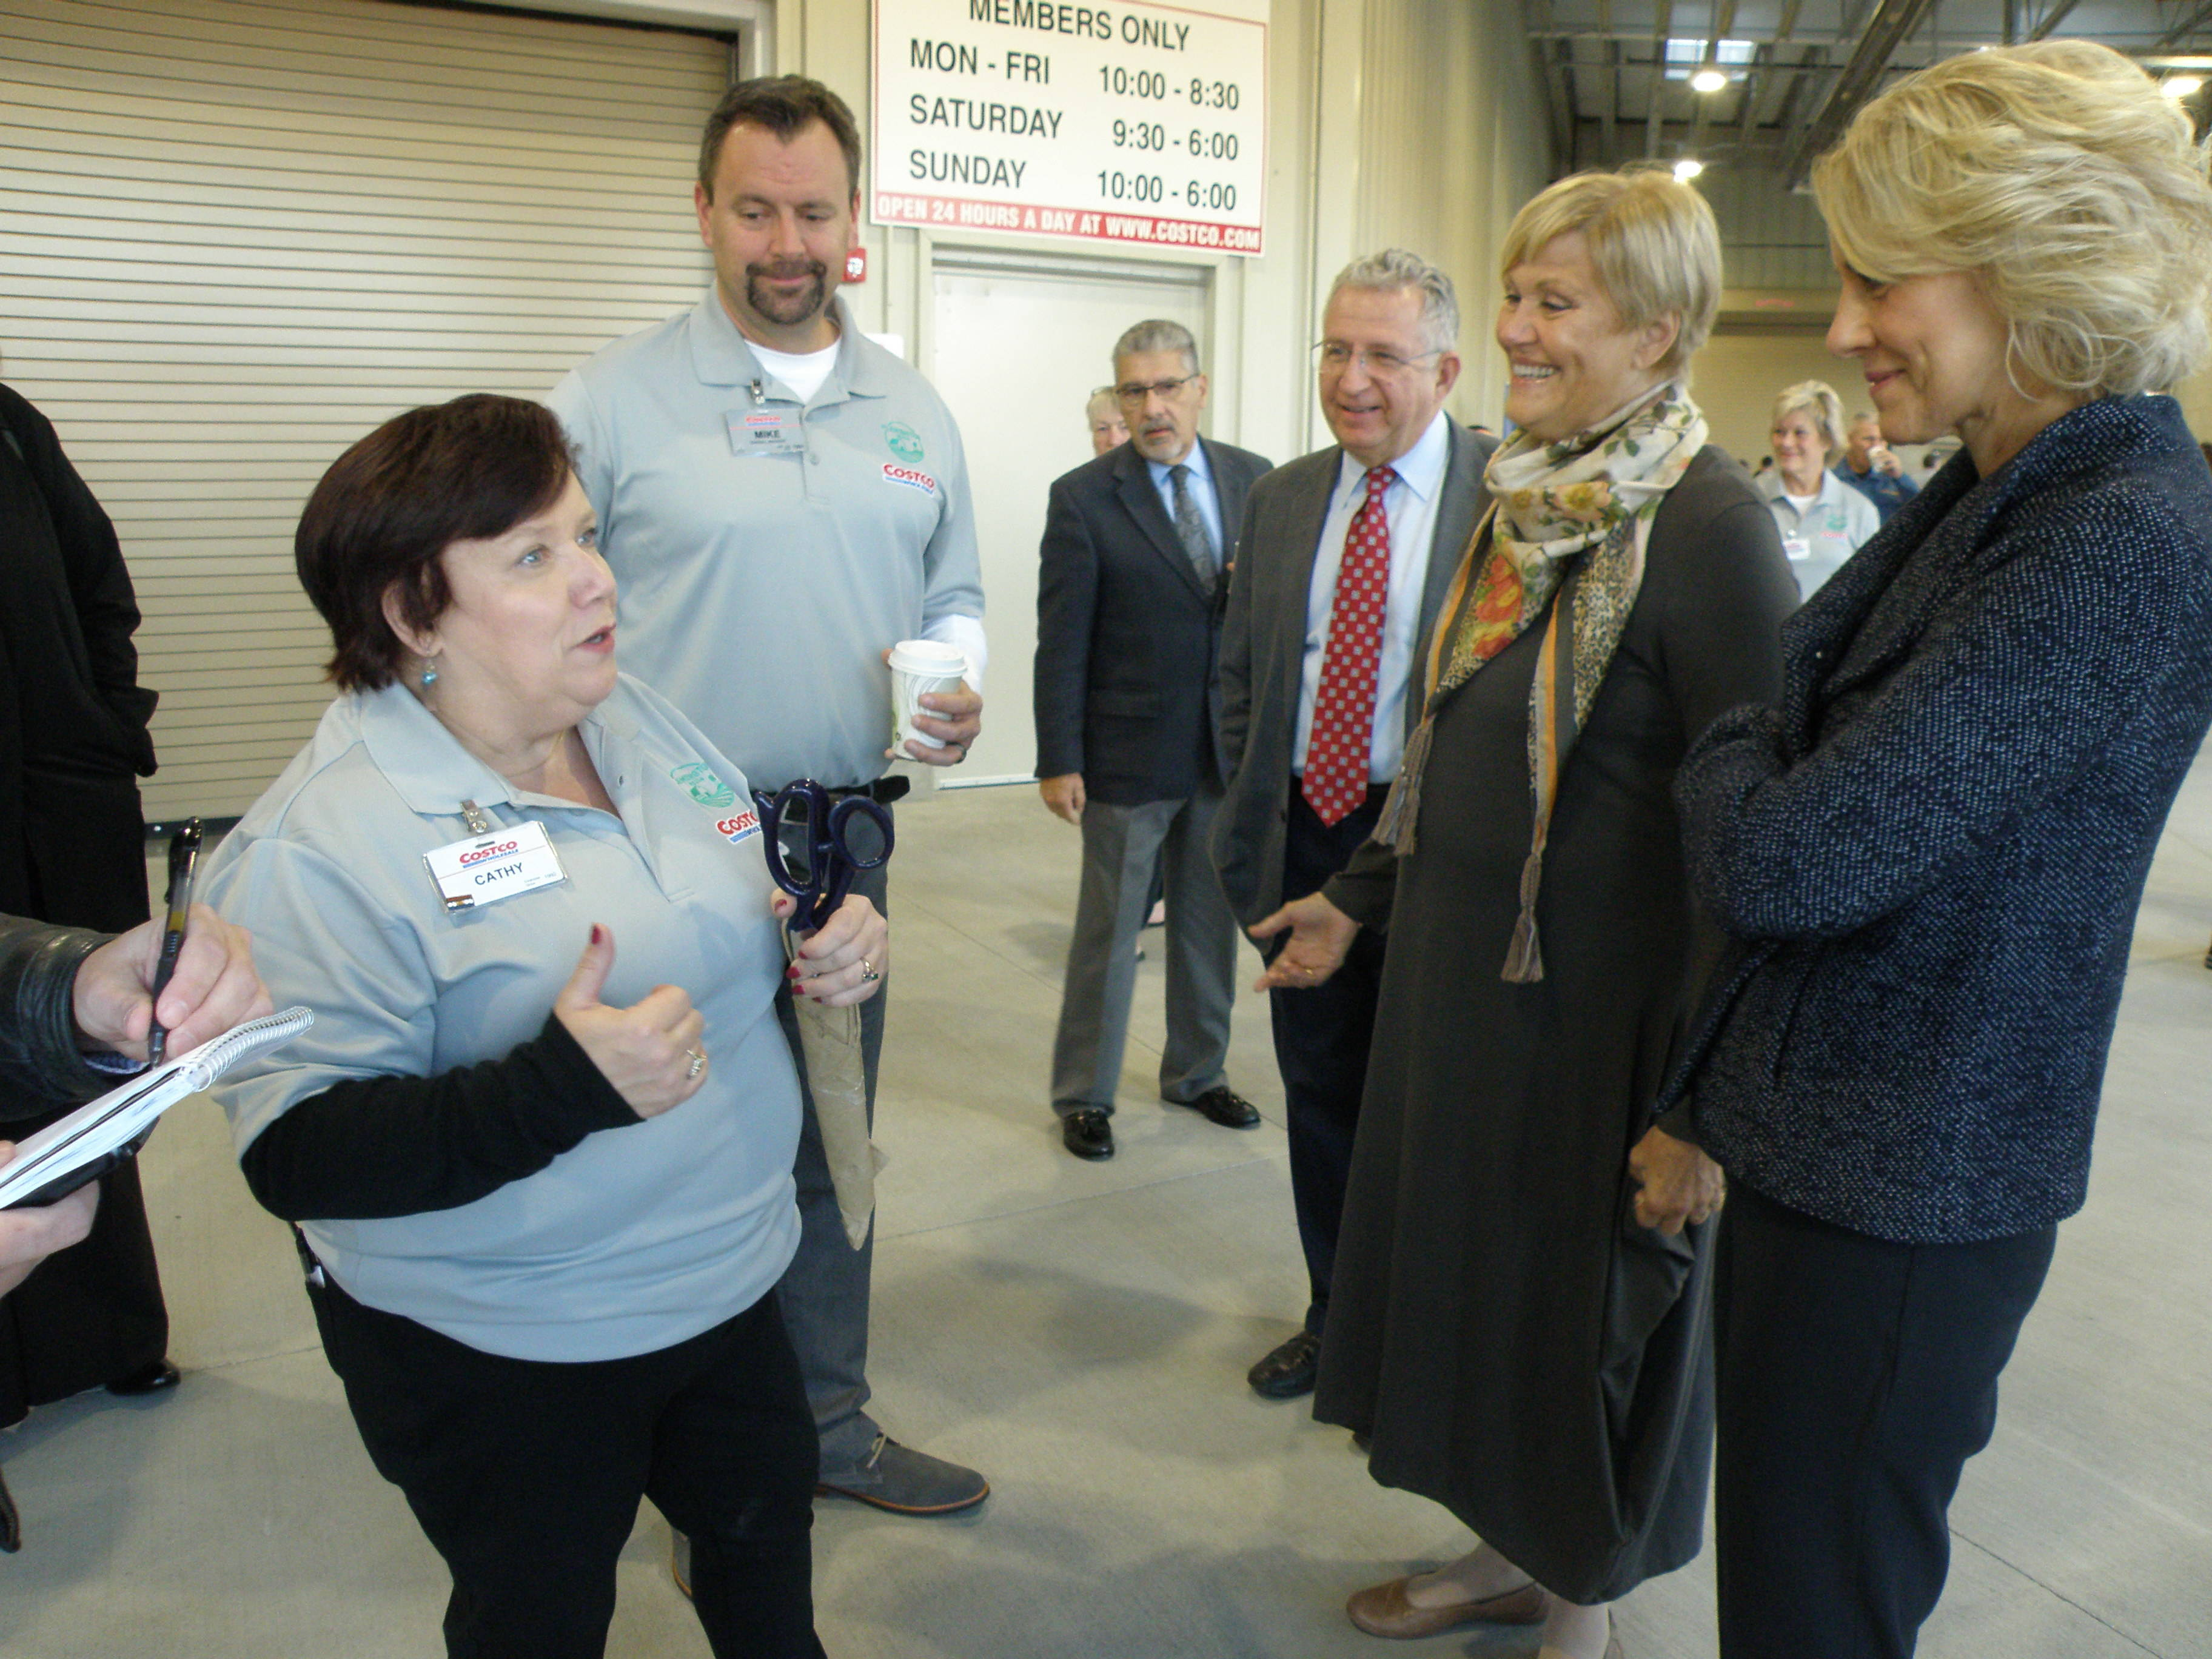 flemington s costco throws open its doors flemington raritan nj from left are costco s cathy wanklin and mike liszewski chatting mike mangin jim robinson suzanne lagay and karen gilbert credits curtis leeds